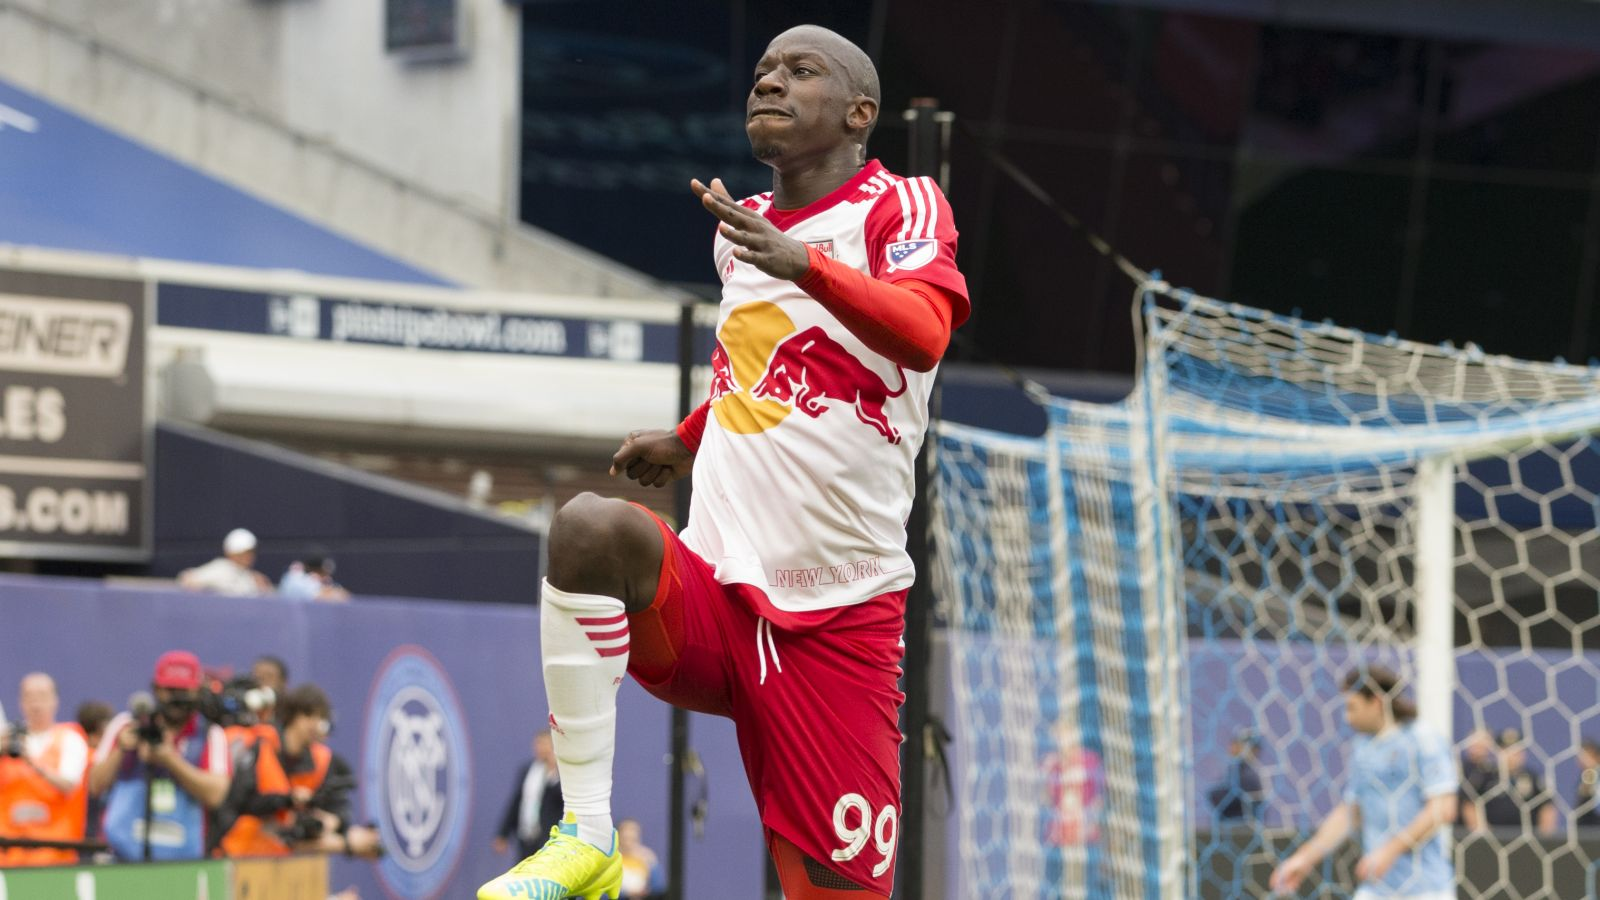 Wright-Phillips breaks MLS hat trick record in win over Toronto